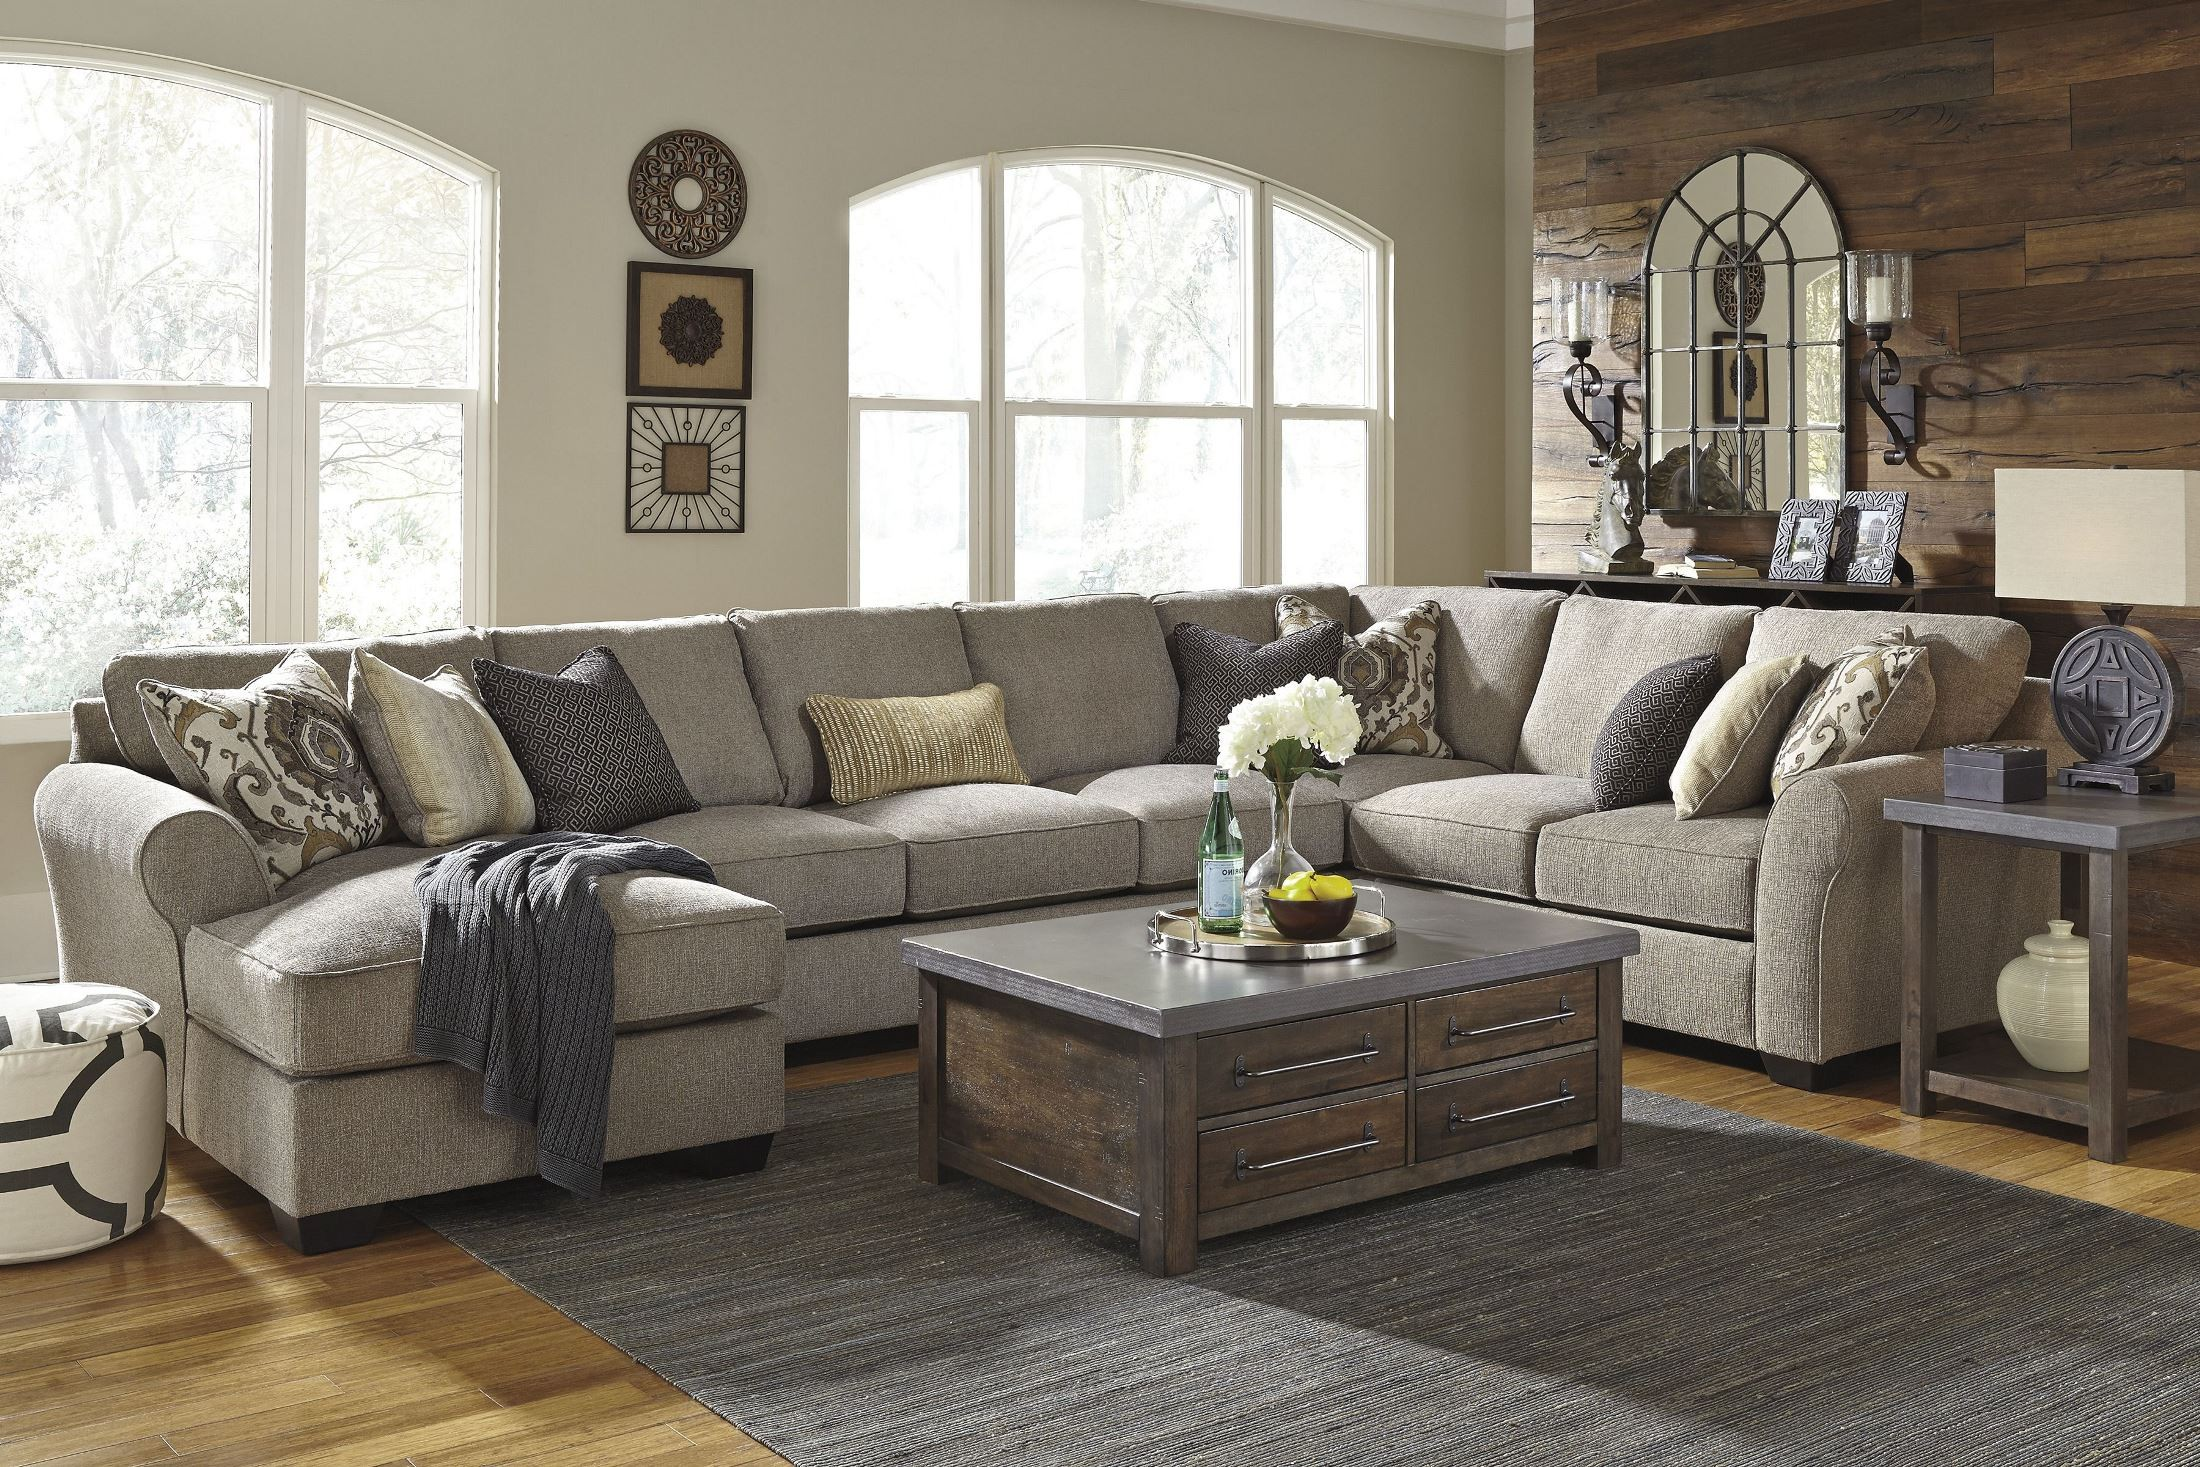 Pantomine Driftwood LAF Chaise Sectional from Ashley